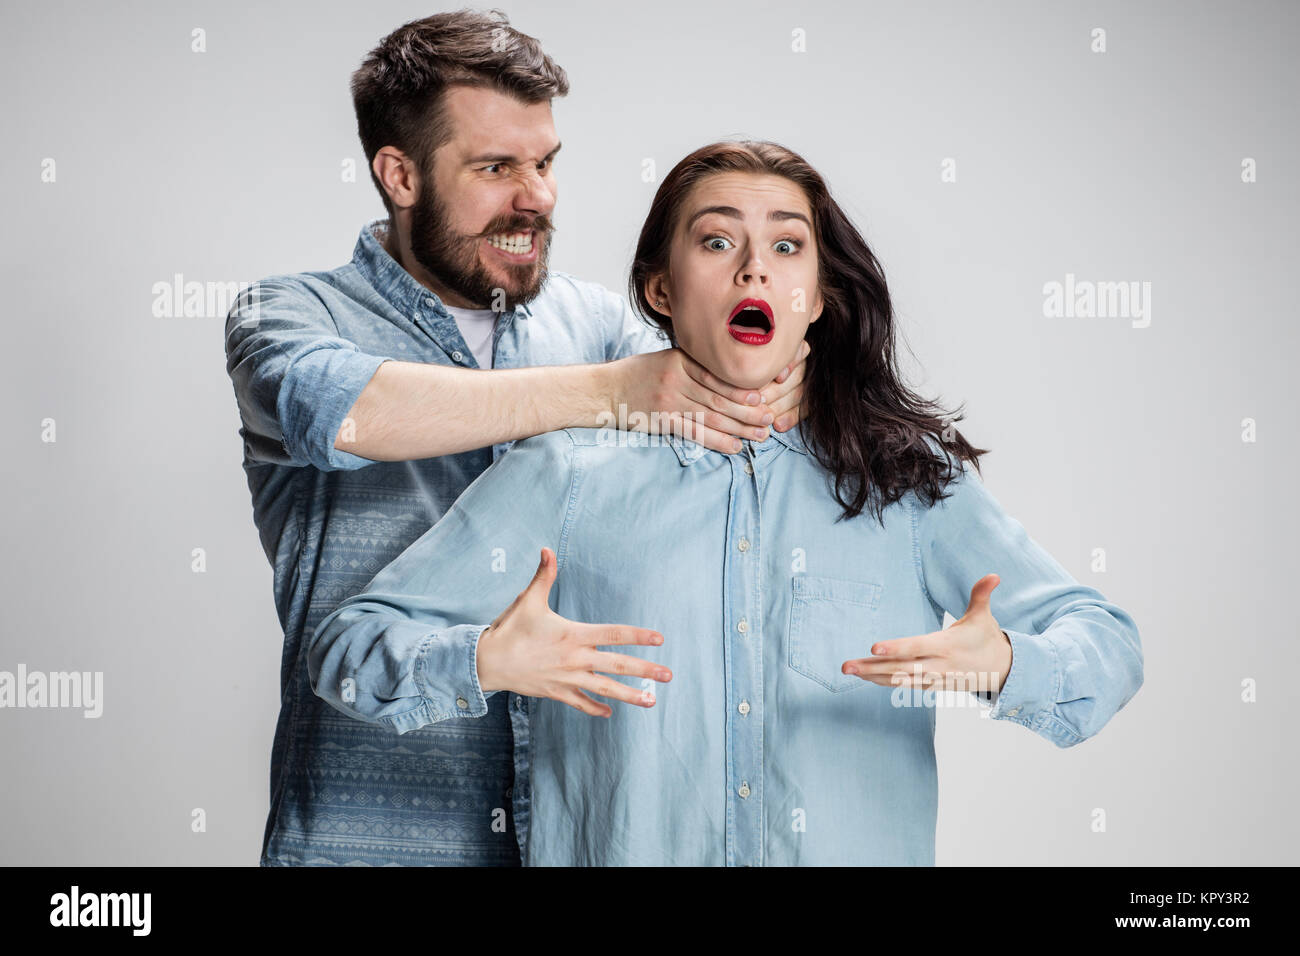 The quarrel men and women. Man strangling a woman on gray background - Stock Image